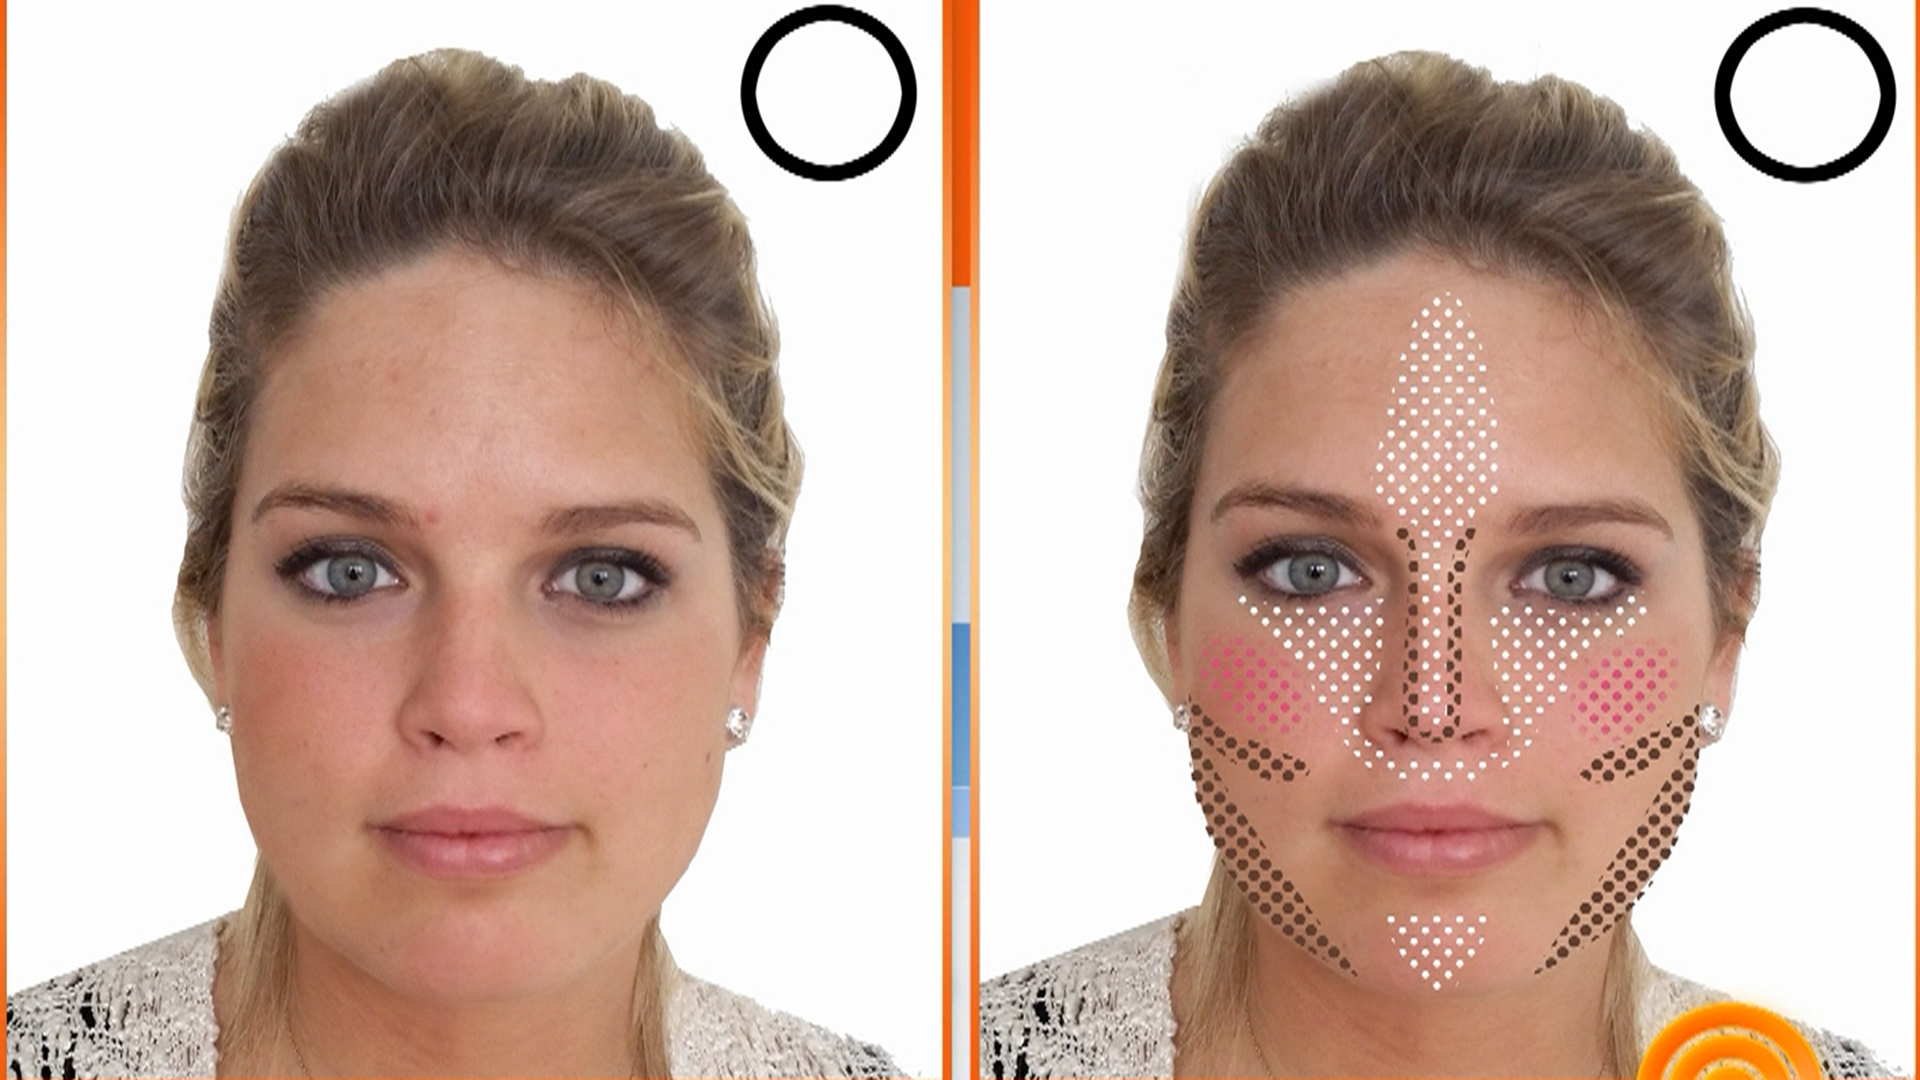 DIY a new face Contouring with makeup is easier than you